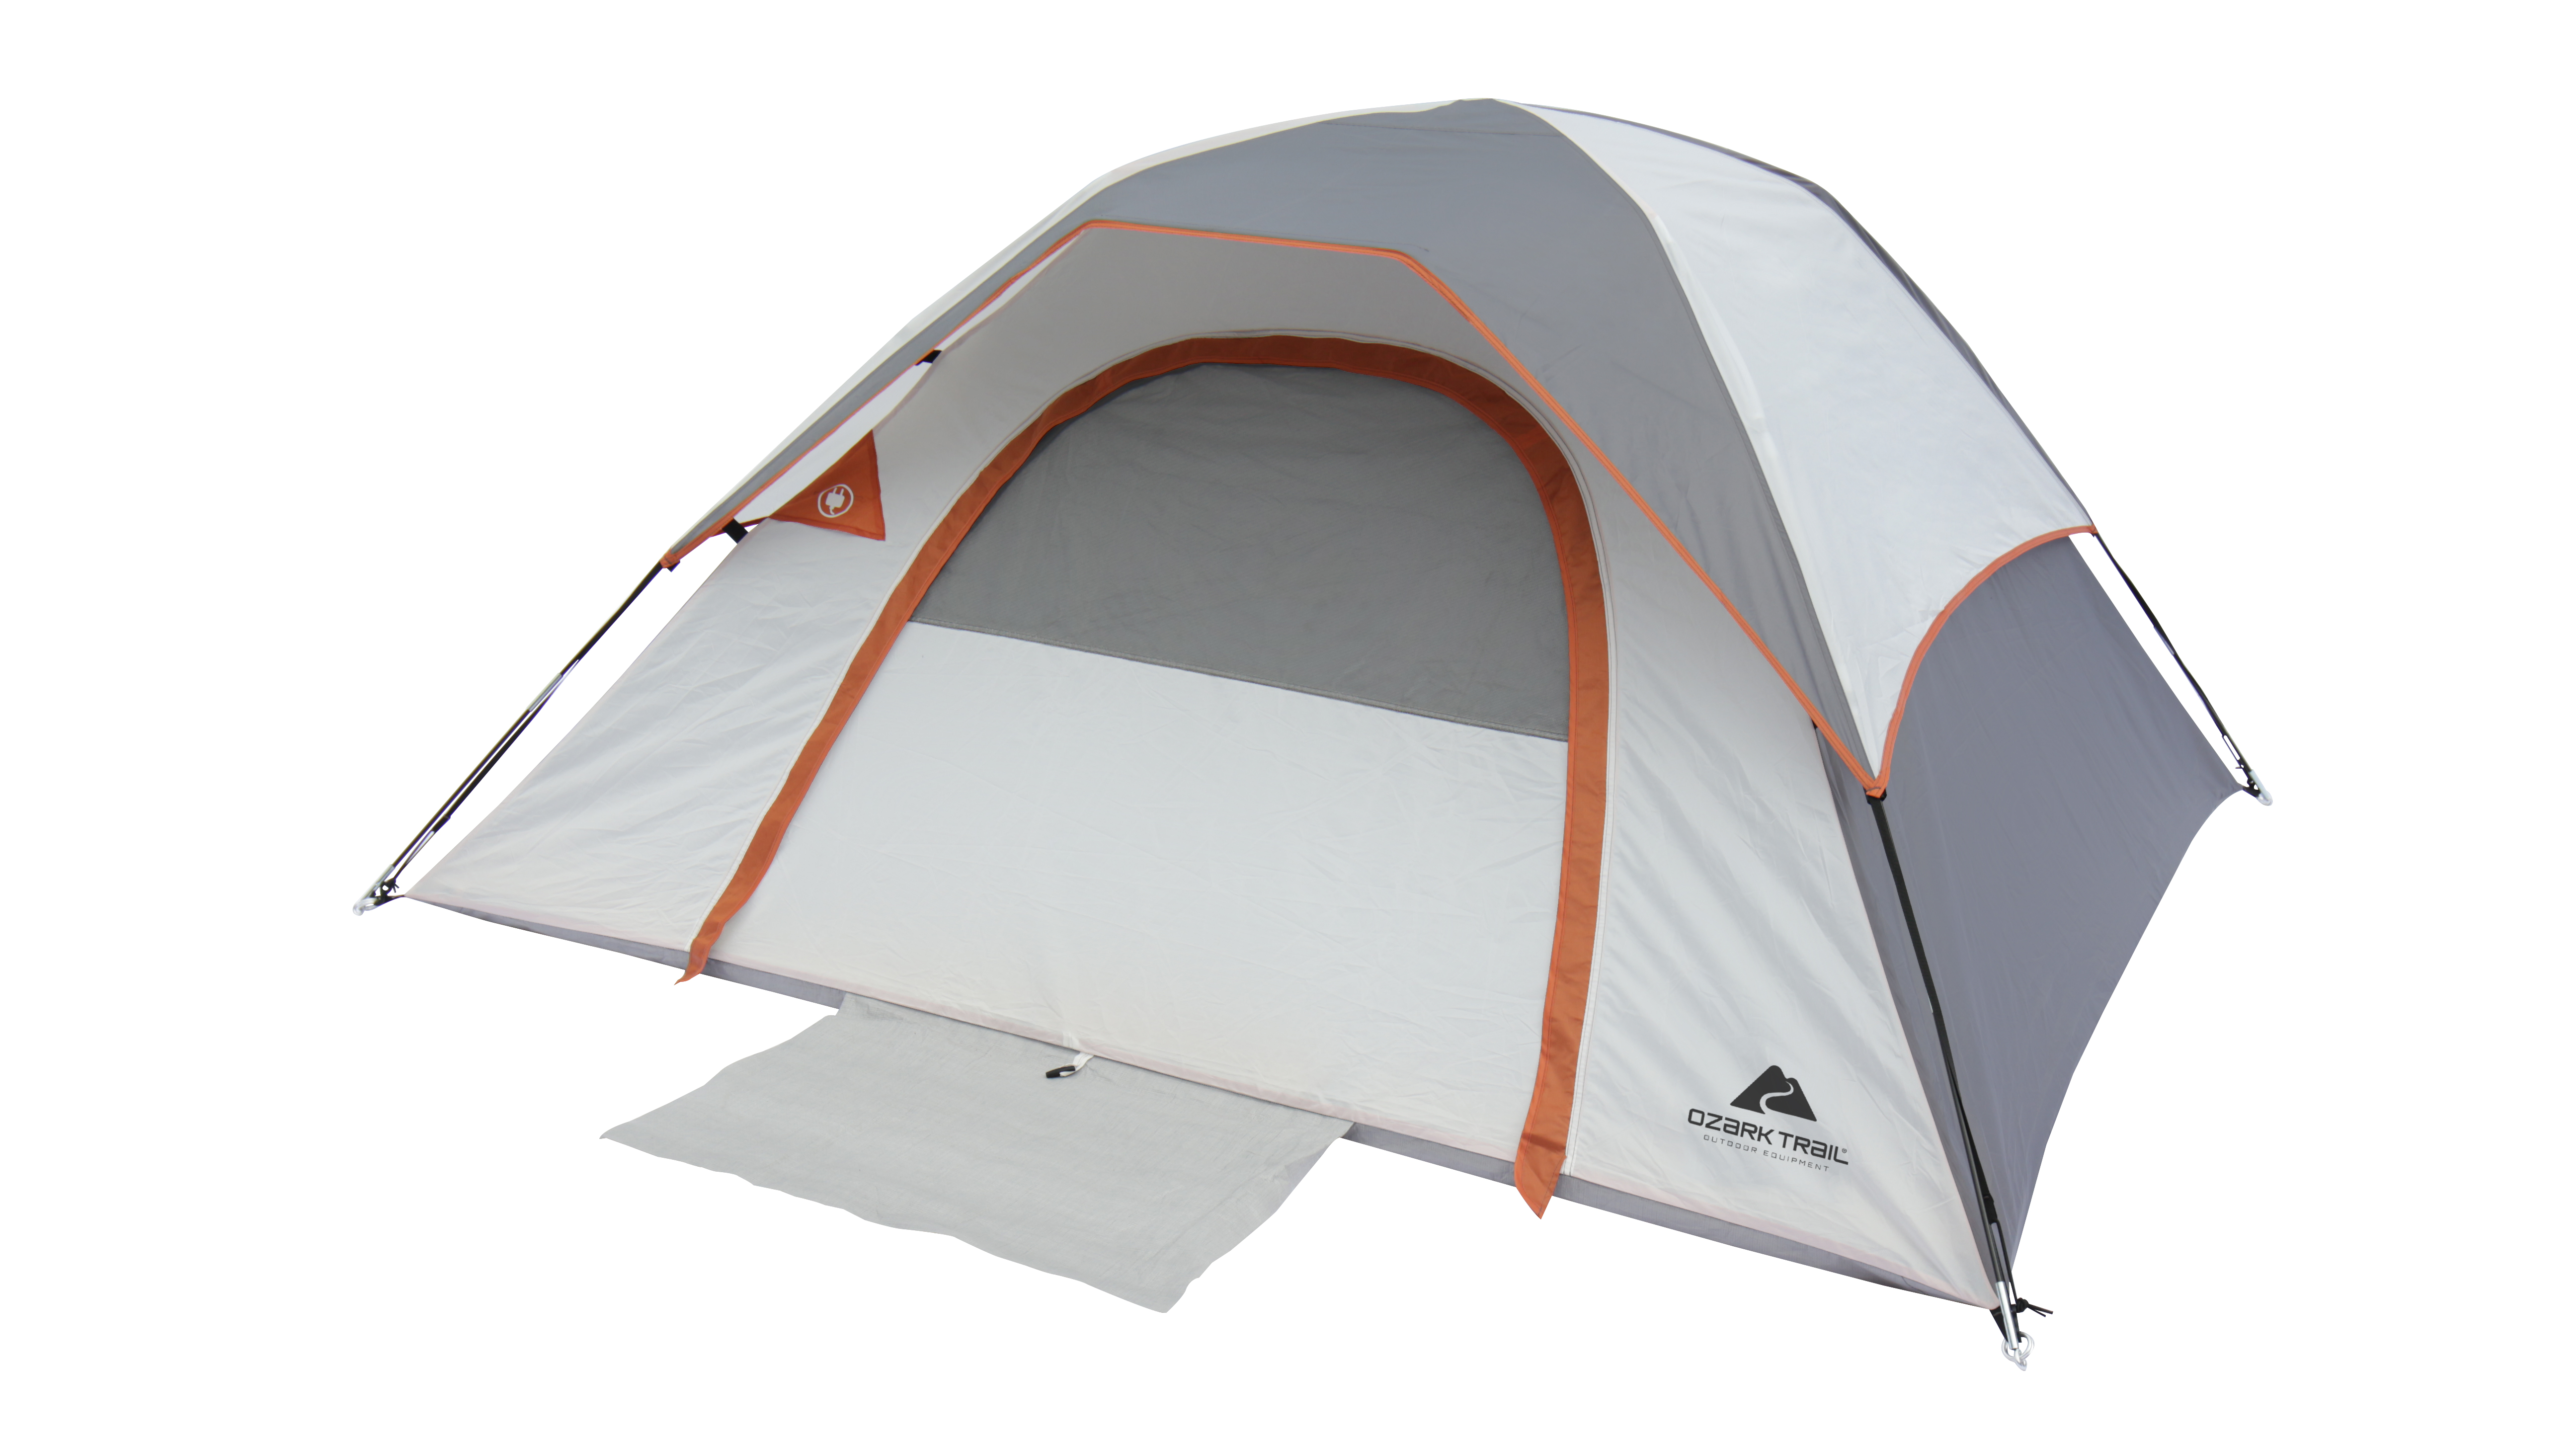 Ozark Trail 3-Person Camping Dome Tent by HKD GLOBAL LIMITED